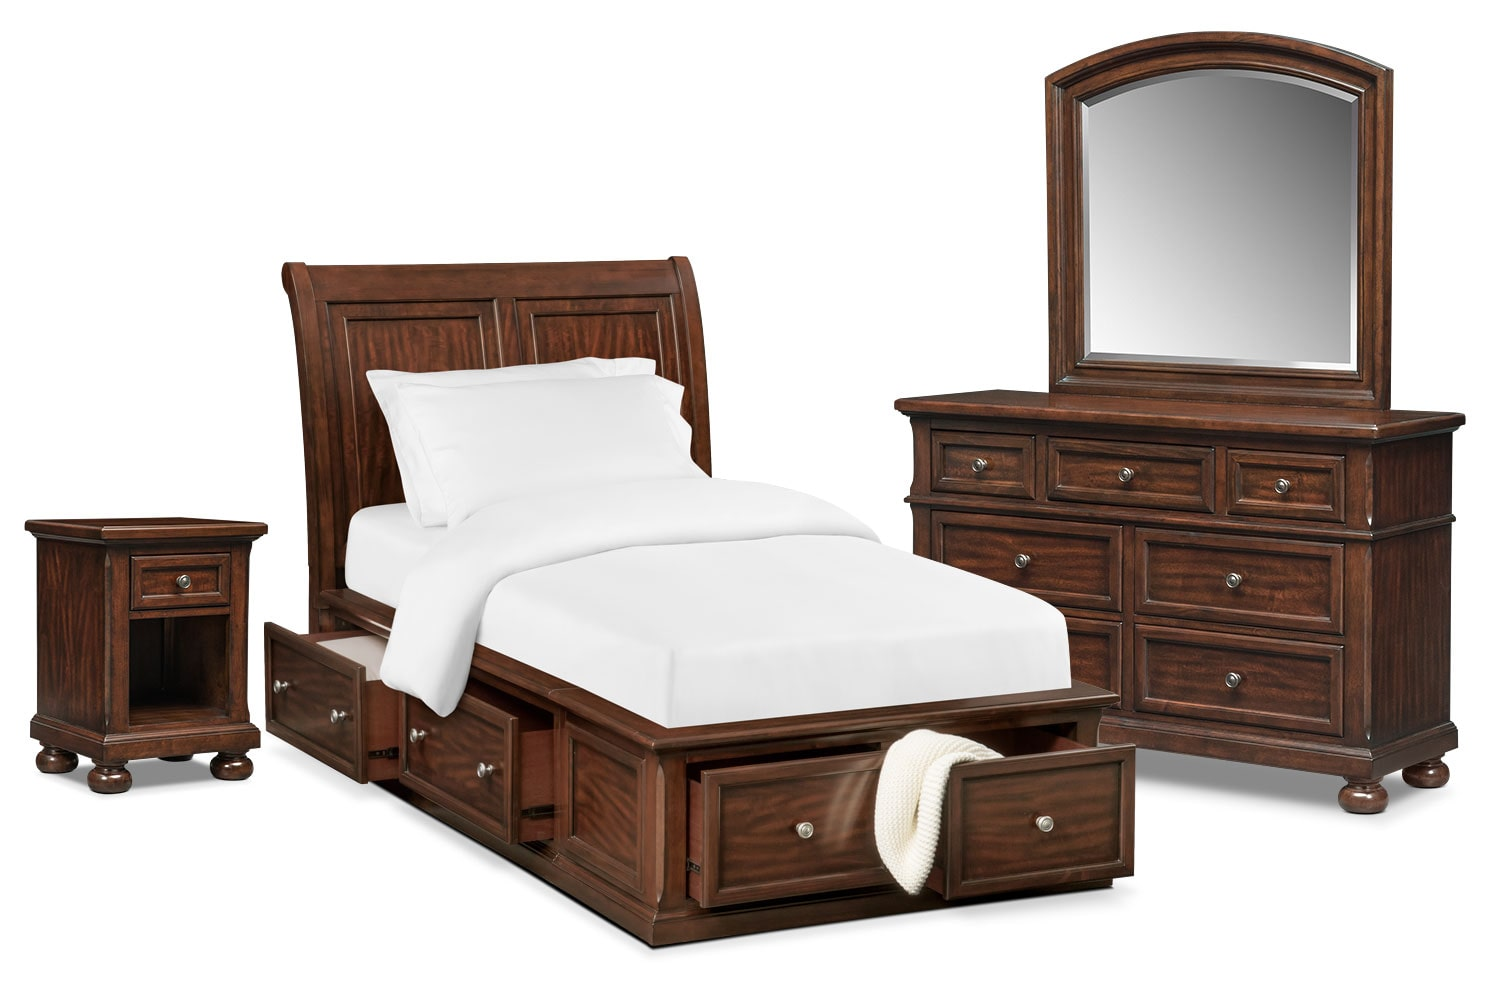 Hanover Youth 6-Piece Twin Sleigh Bedroom Set with Storage - Cherry